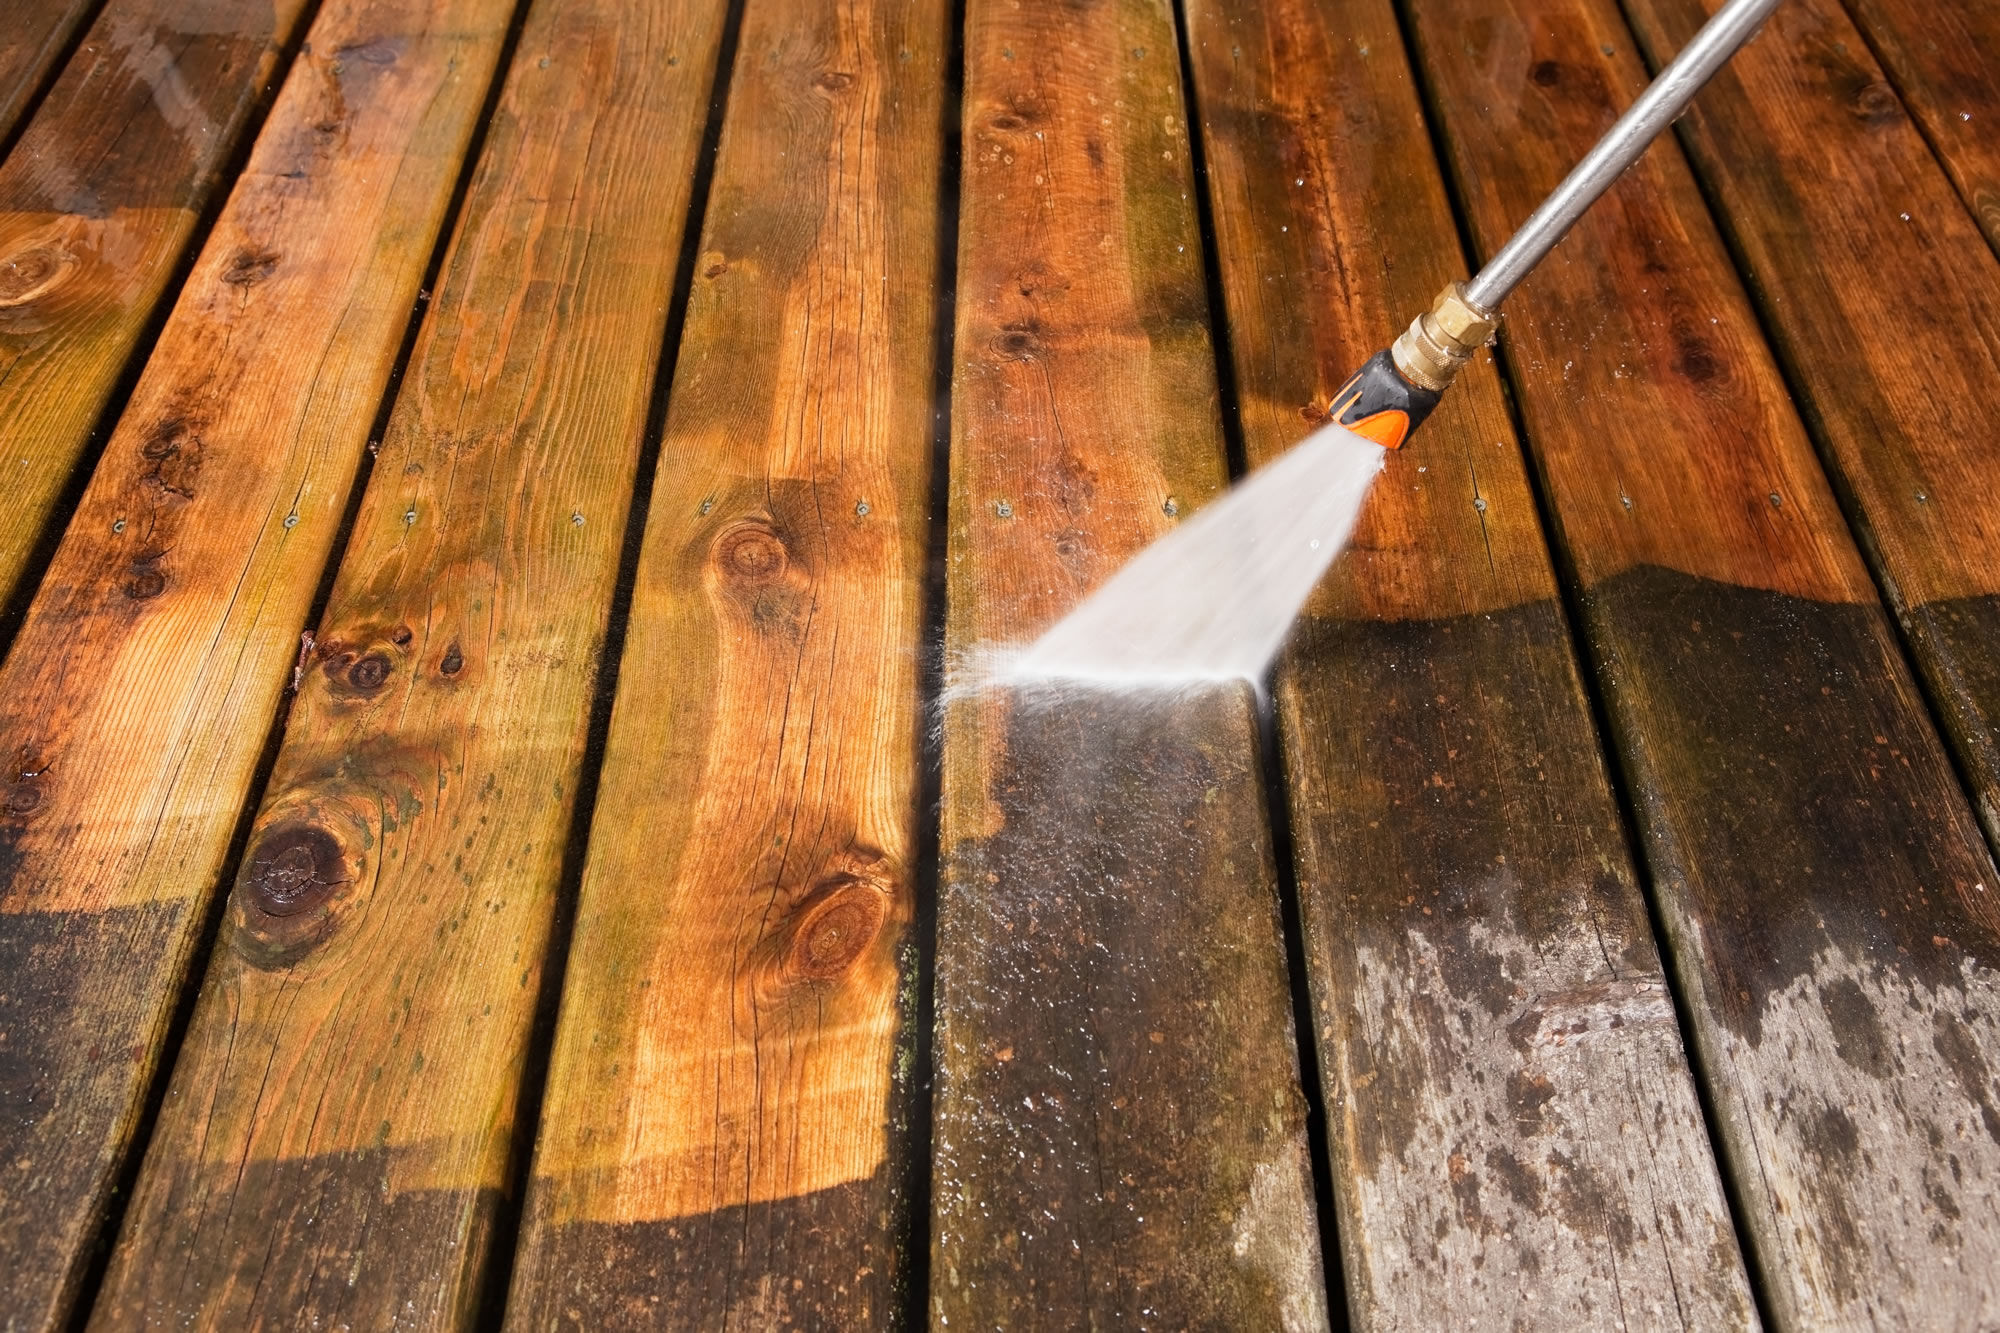 High pressure cleaning for your home